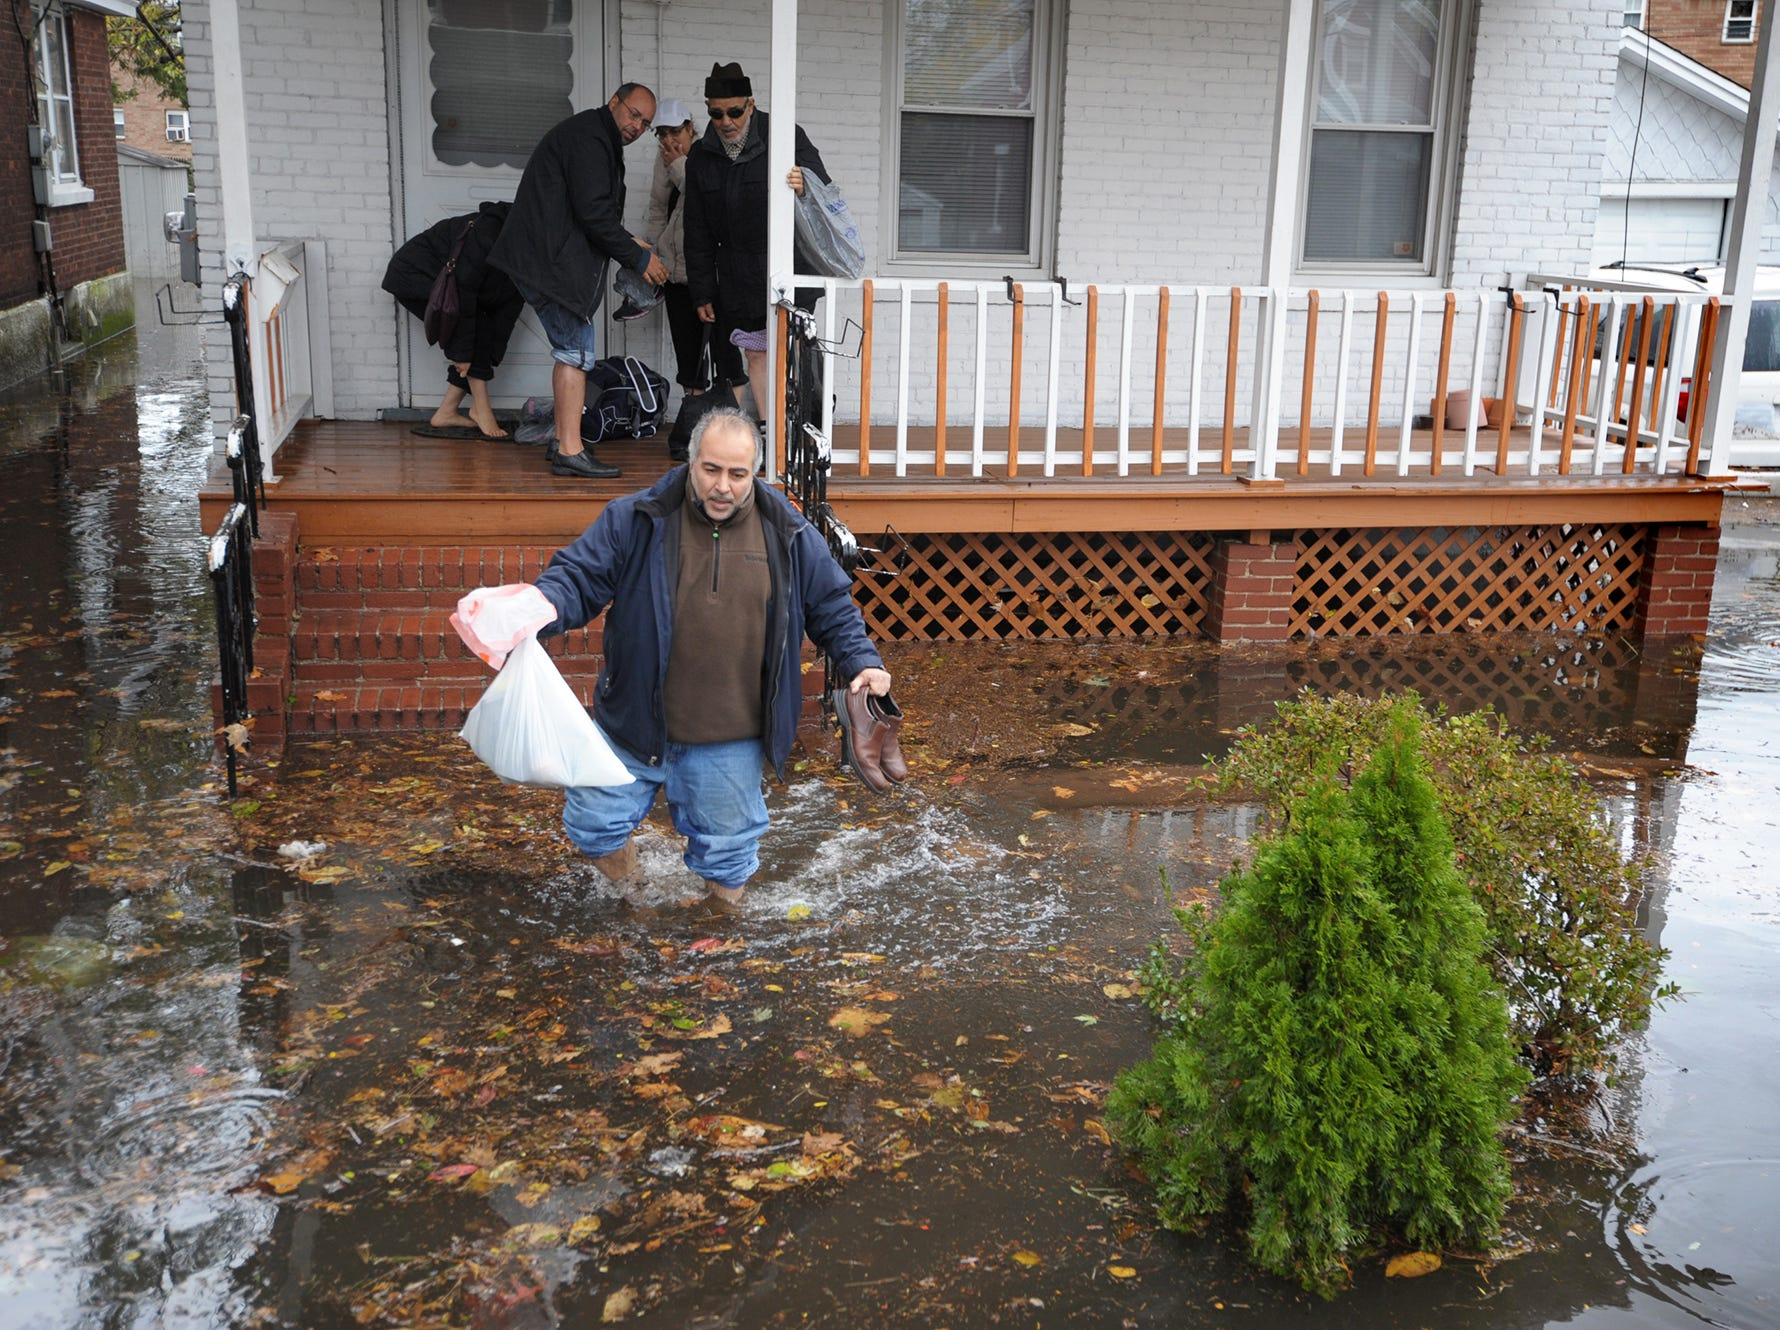 Little Ferry --- Tuesday October 30, 2012  --- Matid Amini wades through water in front of his Columbus Ave. home in Little Ferry to good samaritan Garfield resident John Mercadante personal truck, where Amini was then transported to a shelter at BC Vocational Technology School in Teteboro. Amini was evacuated with 4 of his family members after they were stranded after Hurricane Sandy.